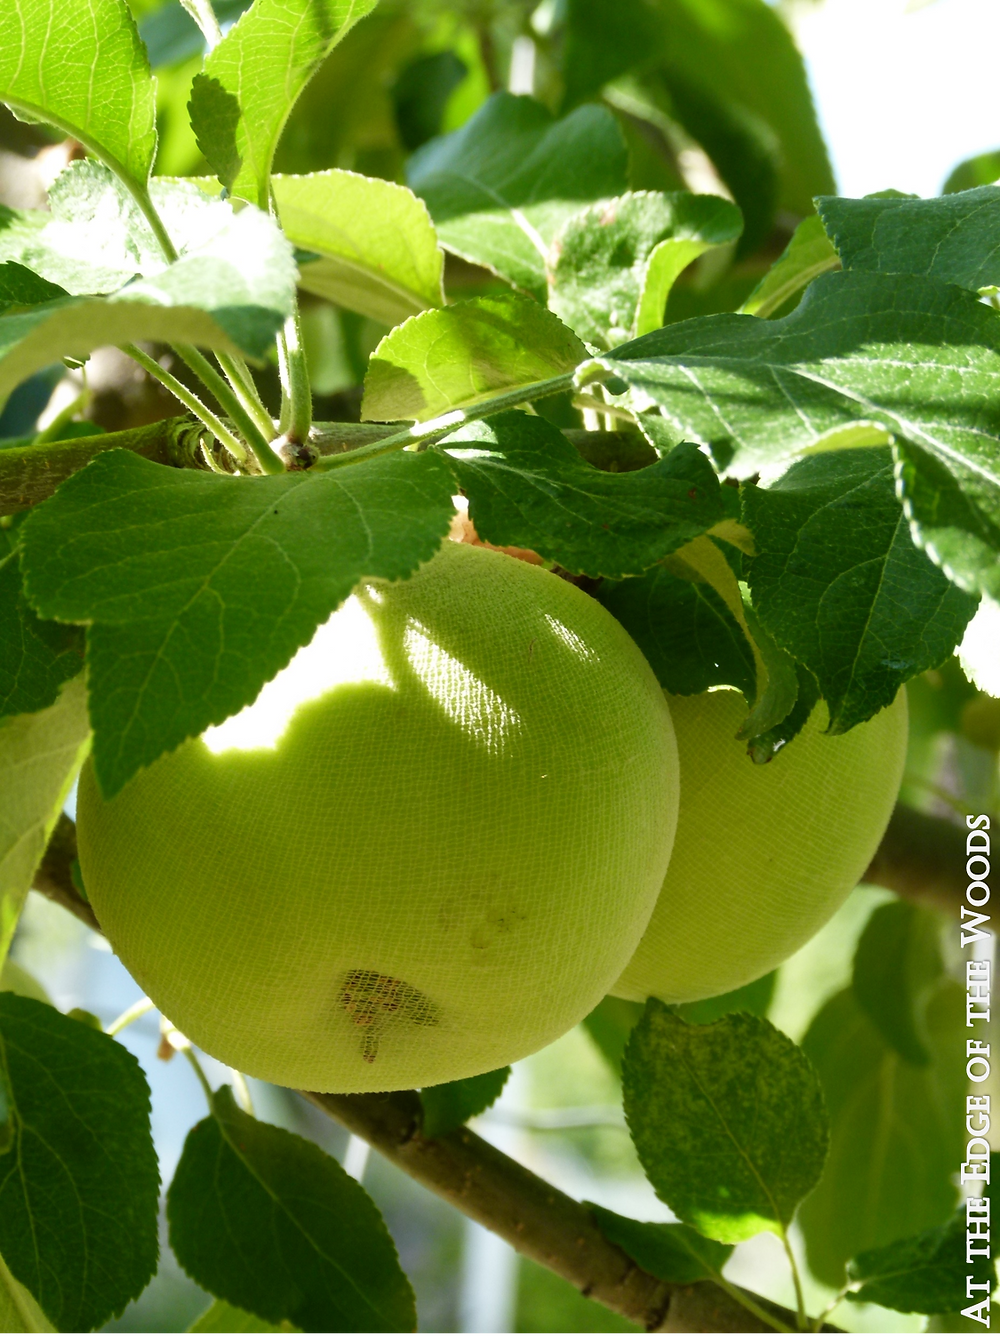 apples with netting covers